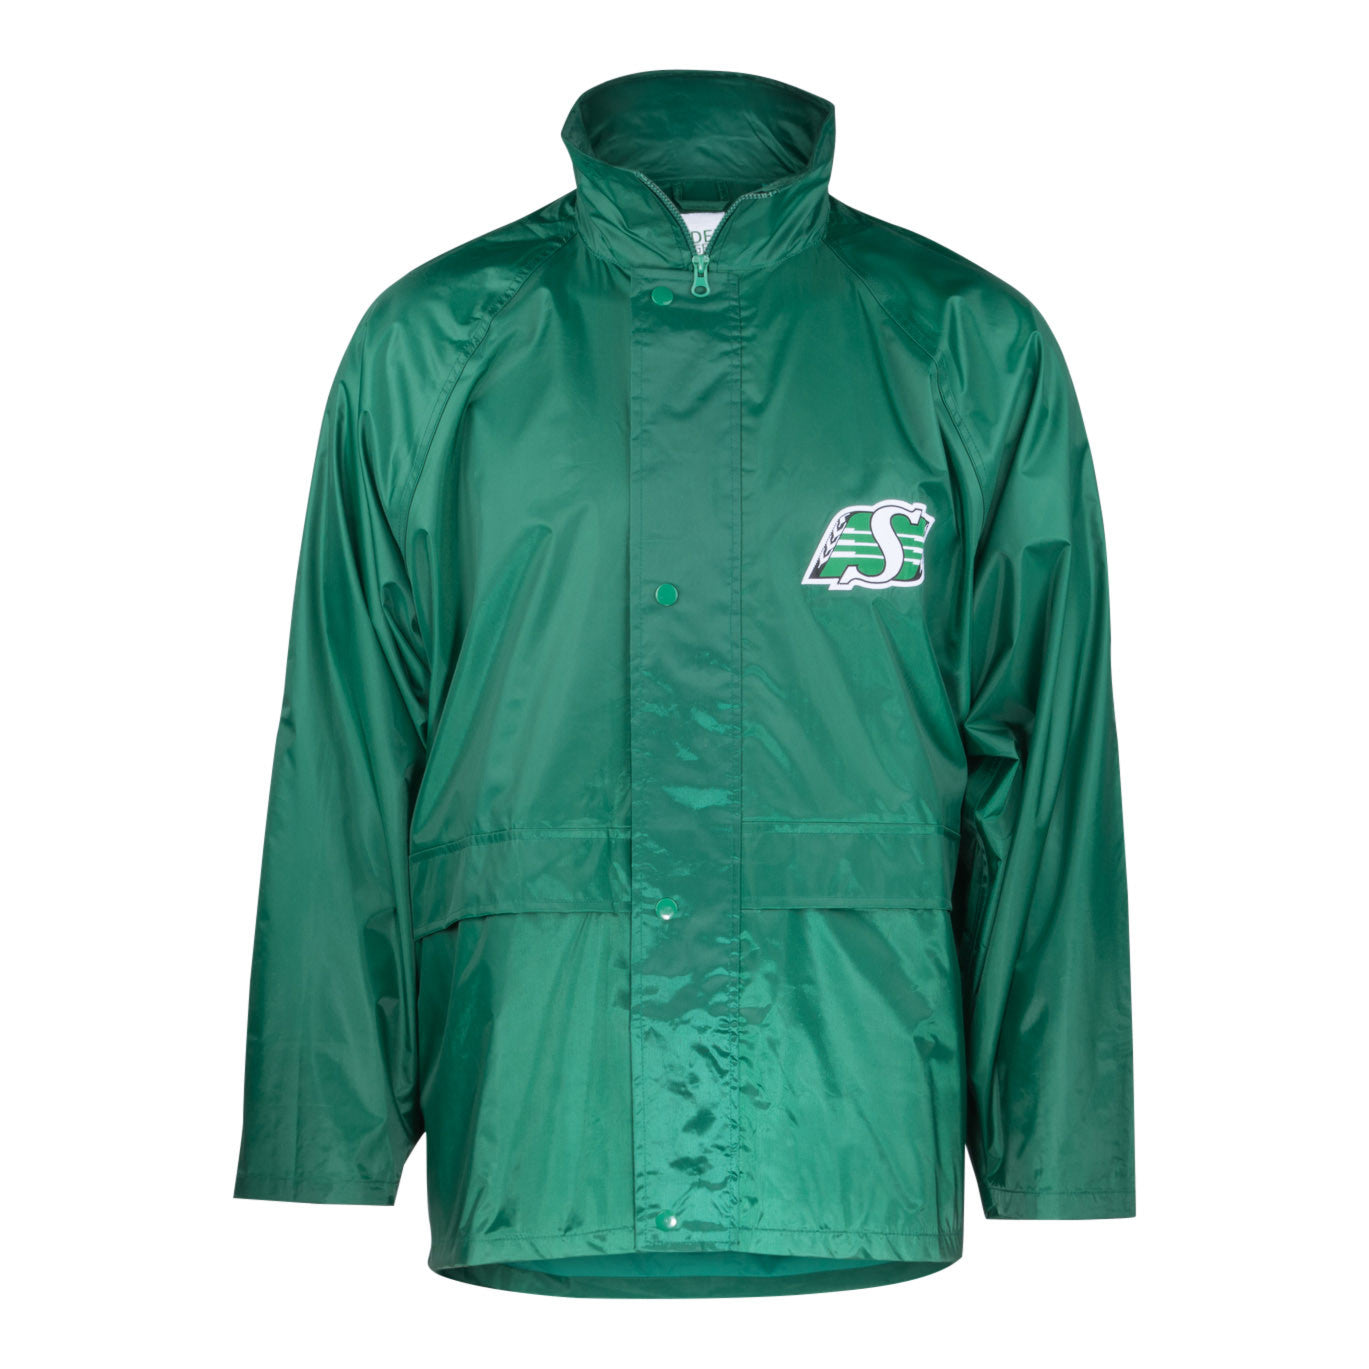 ADULT RAIN JACKET GRN